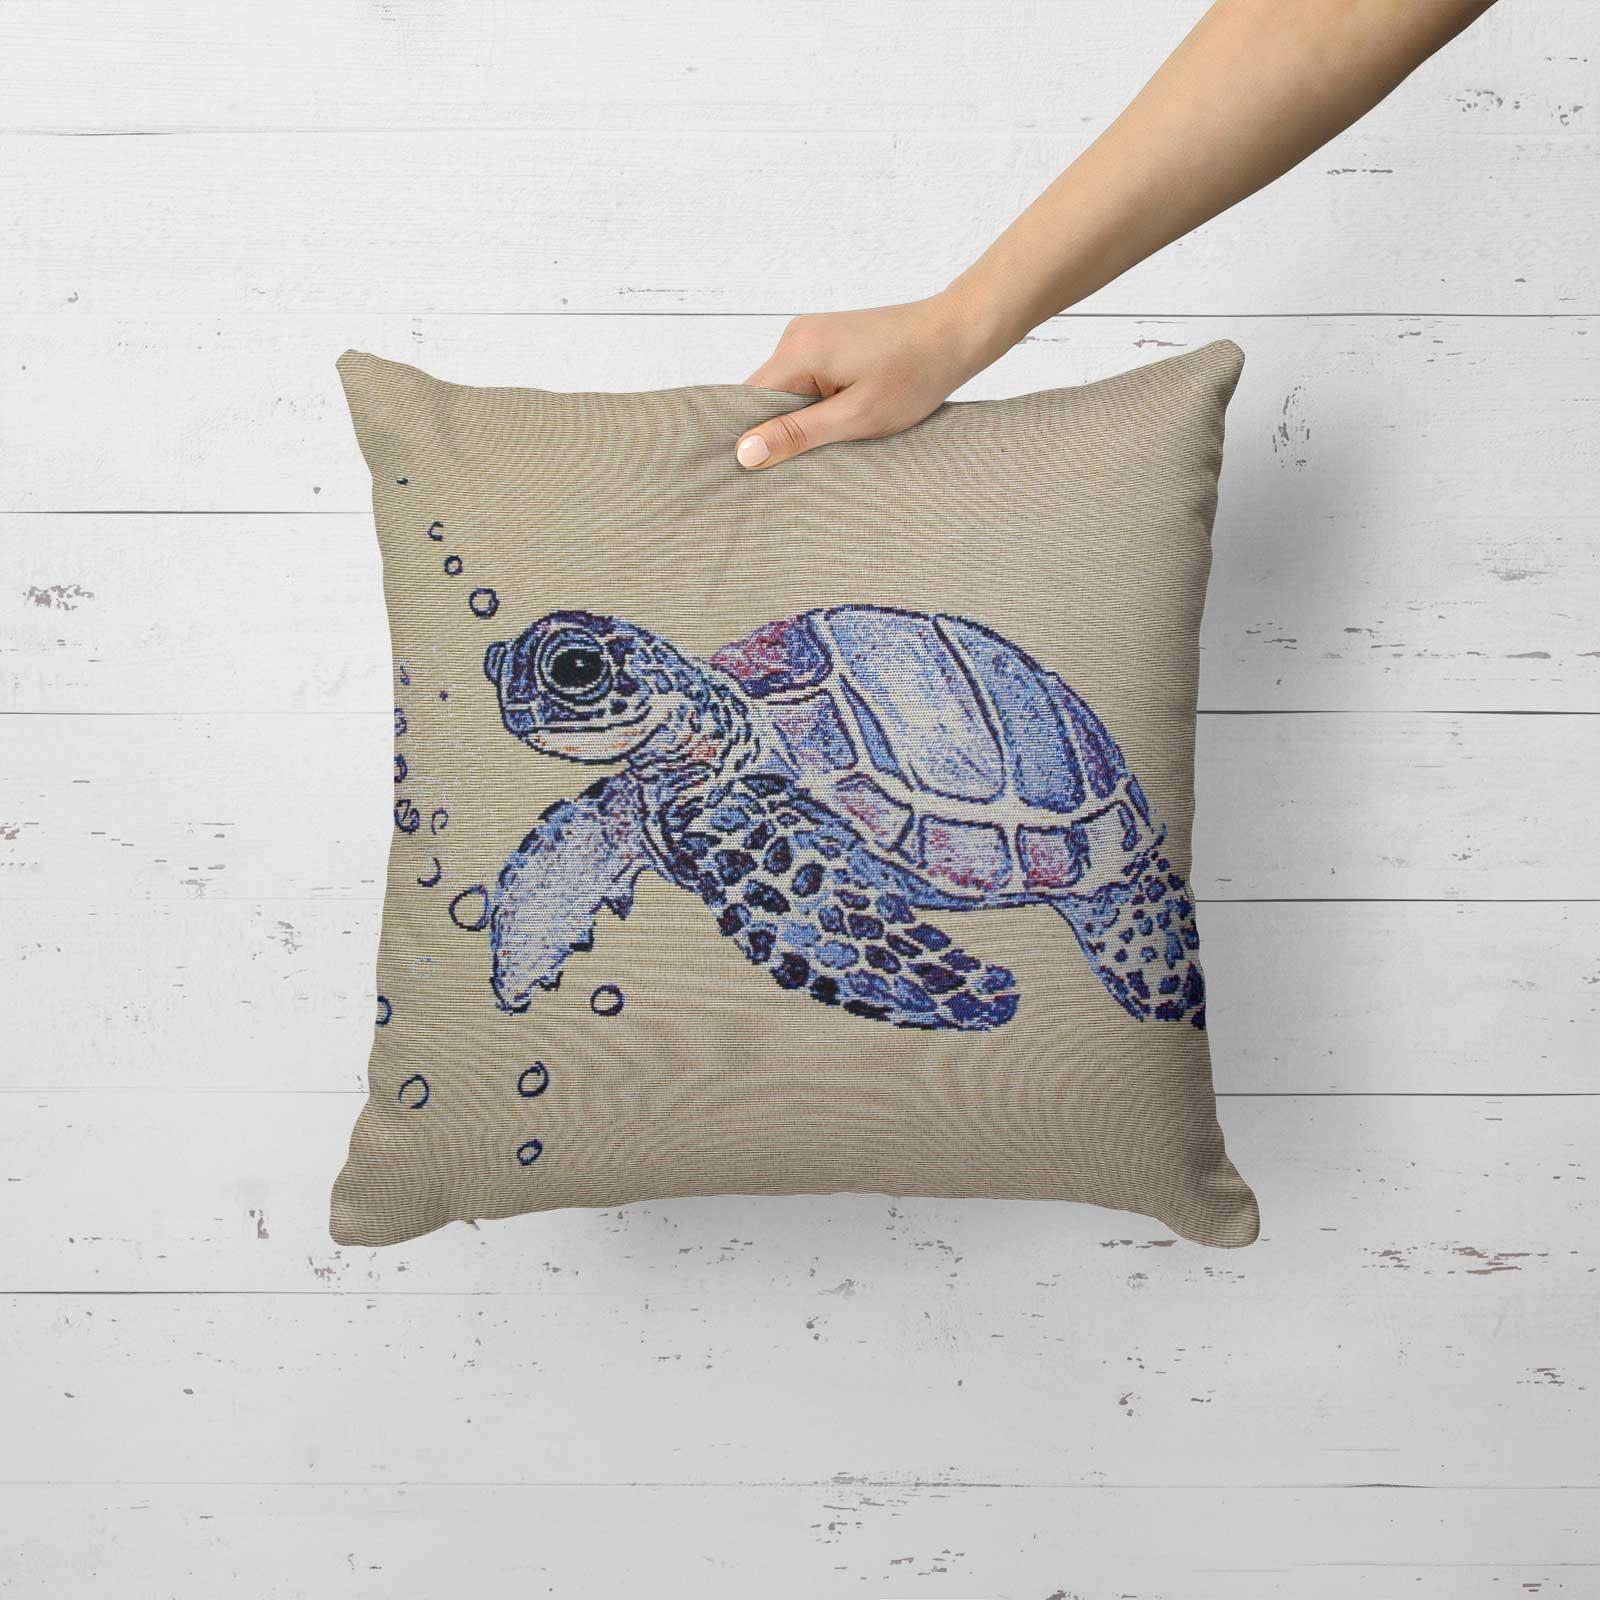 Tapestry-Cushion-Covers-Vintage-Pillow-Cover-Collection-18-034-45cm-Filled-Cushions thumbnail 222